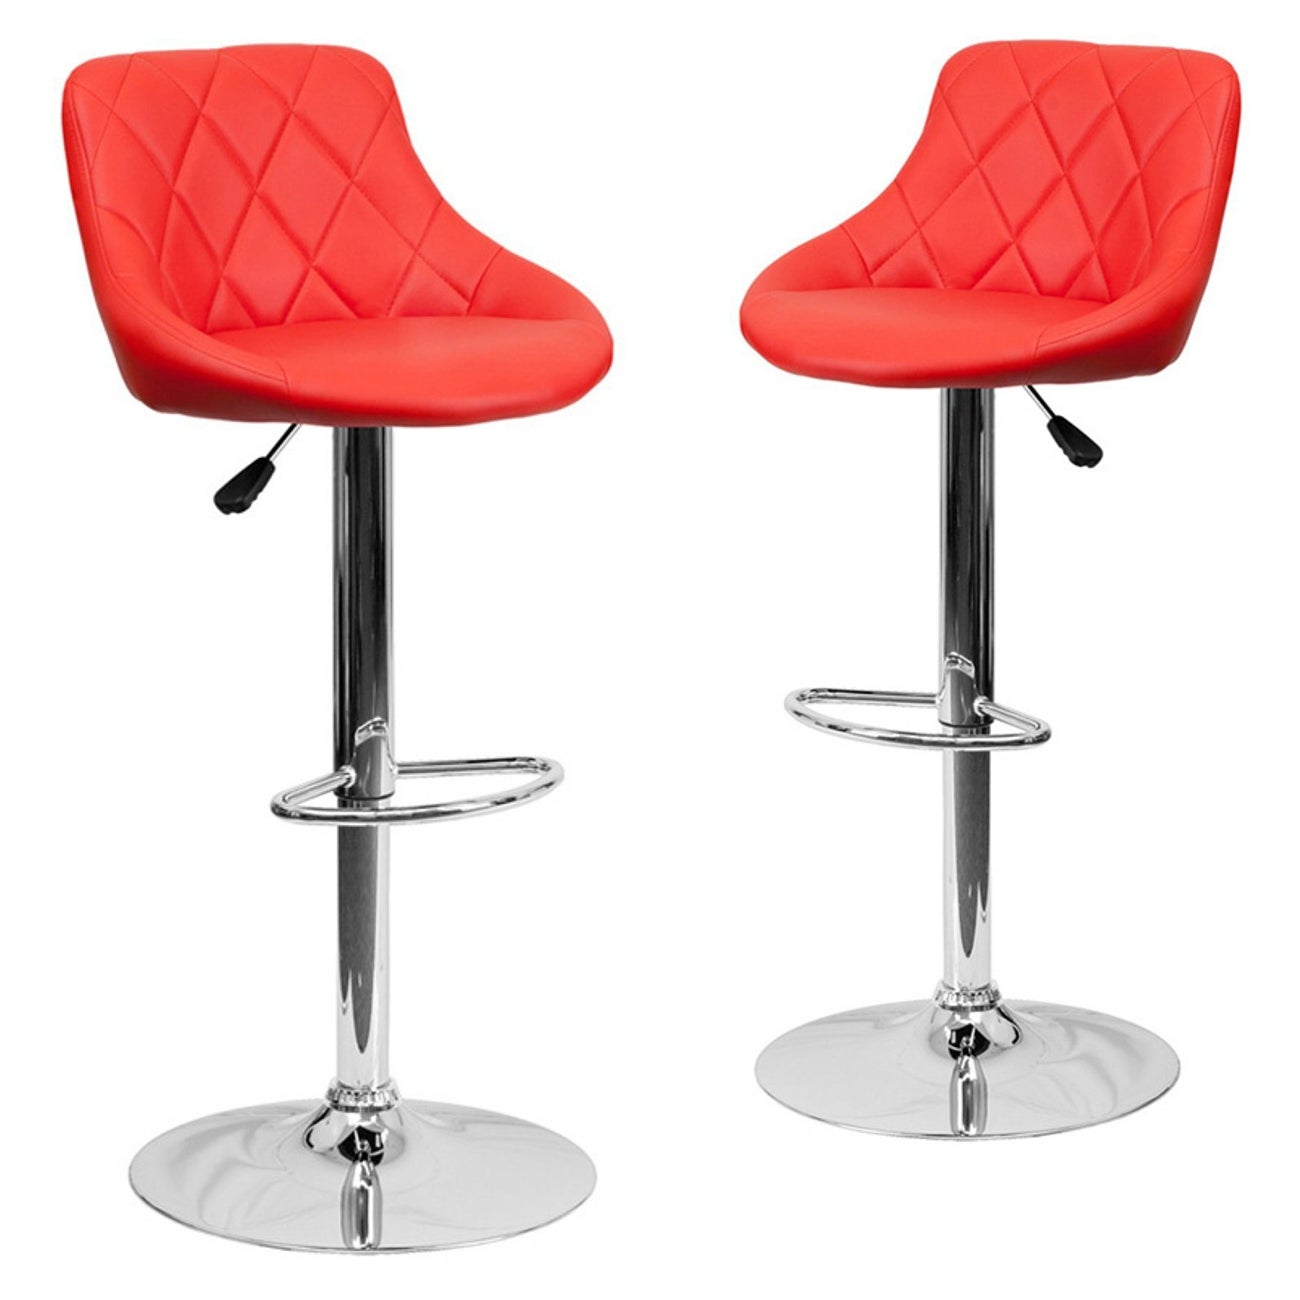 Shop Belleze Set Of 2 Faux Leather Adjustable Bar Stools Back Counter  Height Swivel Stool (Red)   Free Shipping Today   Overstock.com   17833277